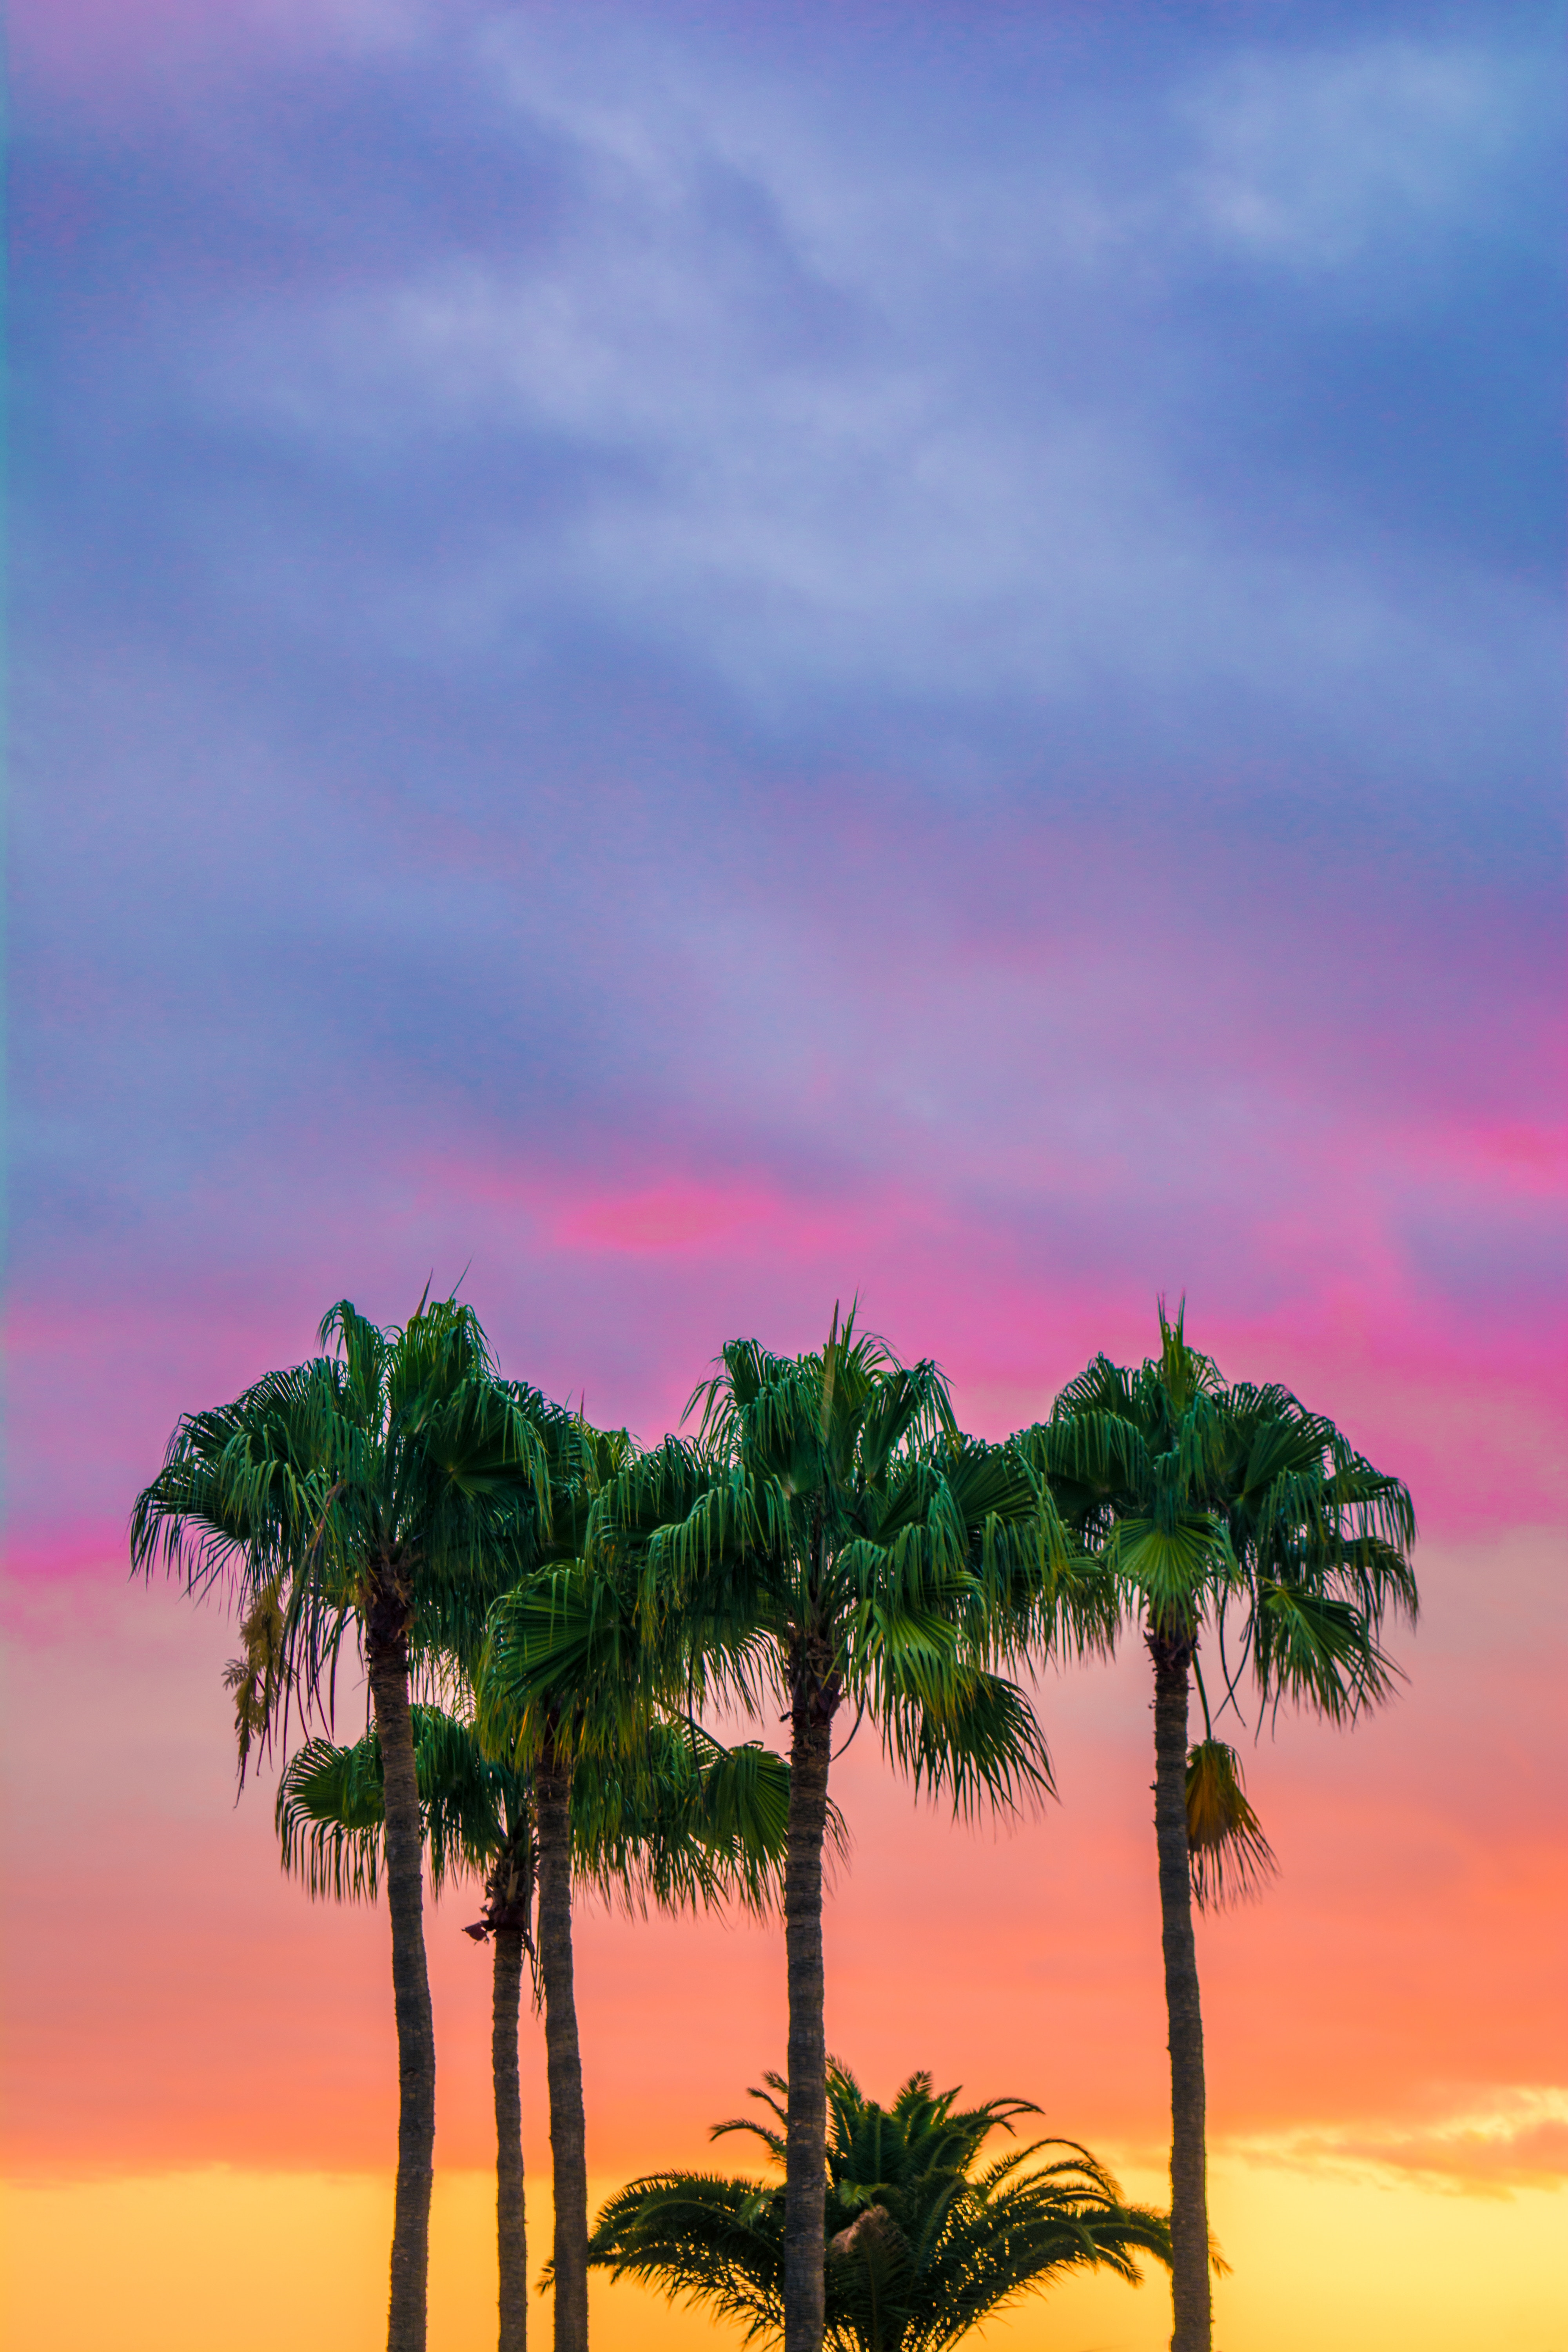 148714 download wallpaper Nature, Sky, Trees, Maspalomas, Spain, Palms screensavers and pictures for free